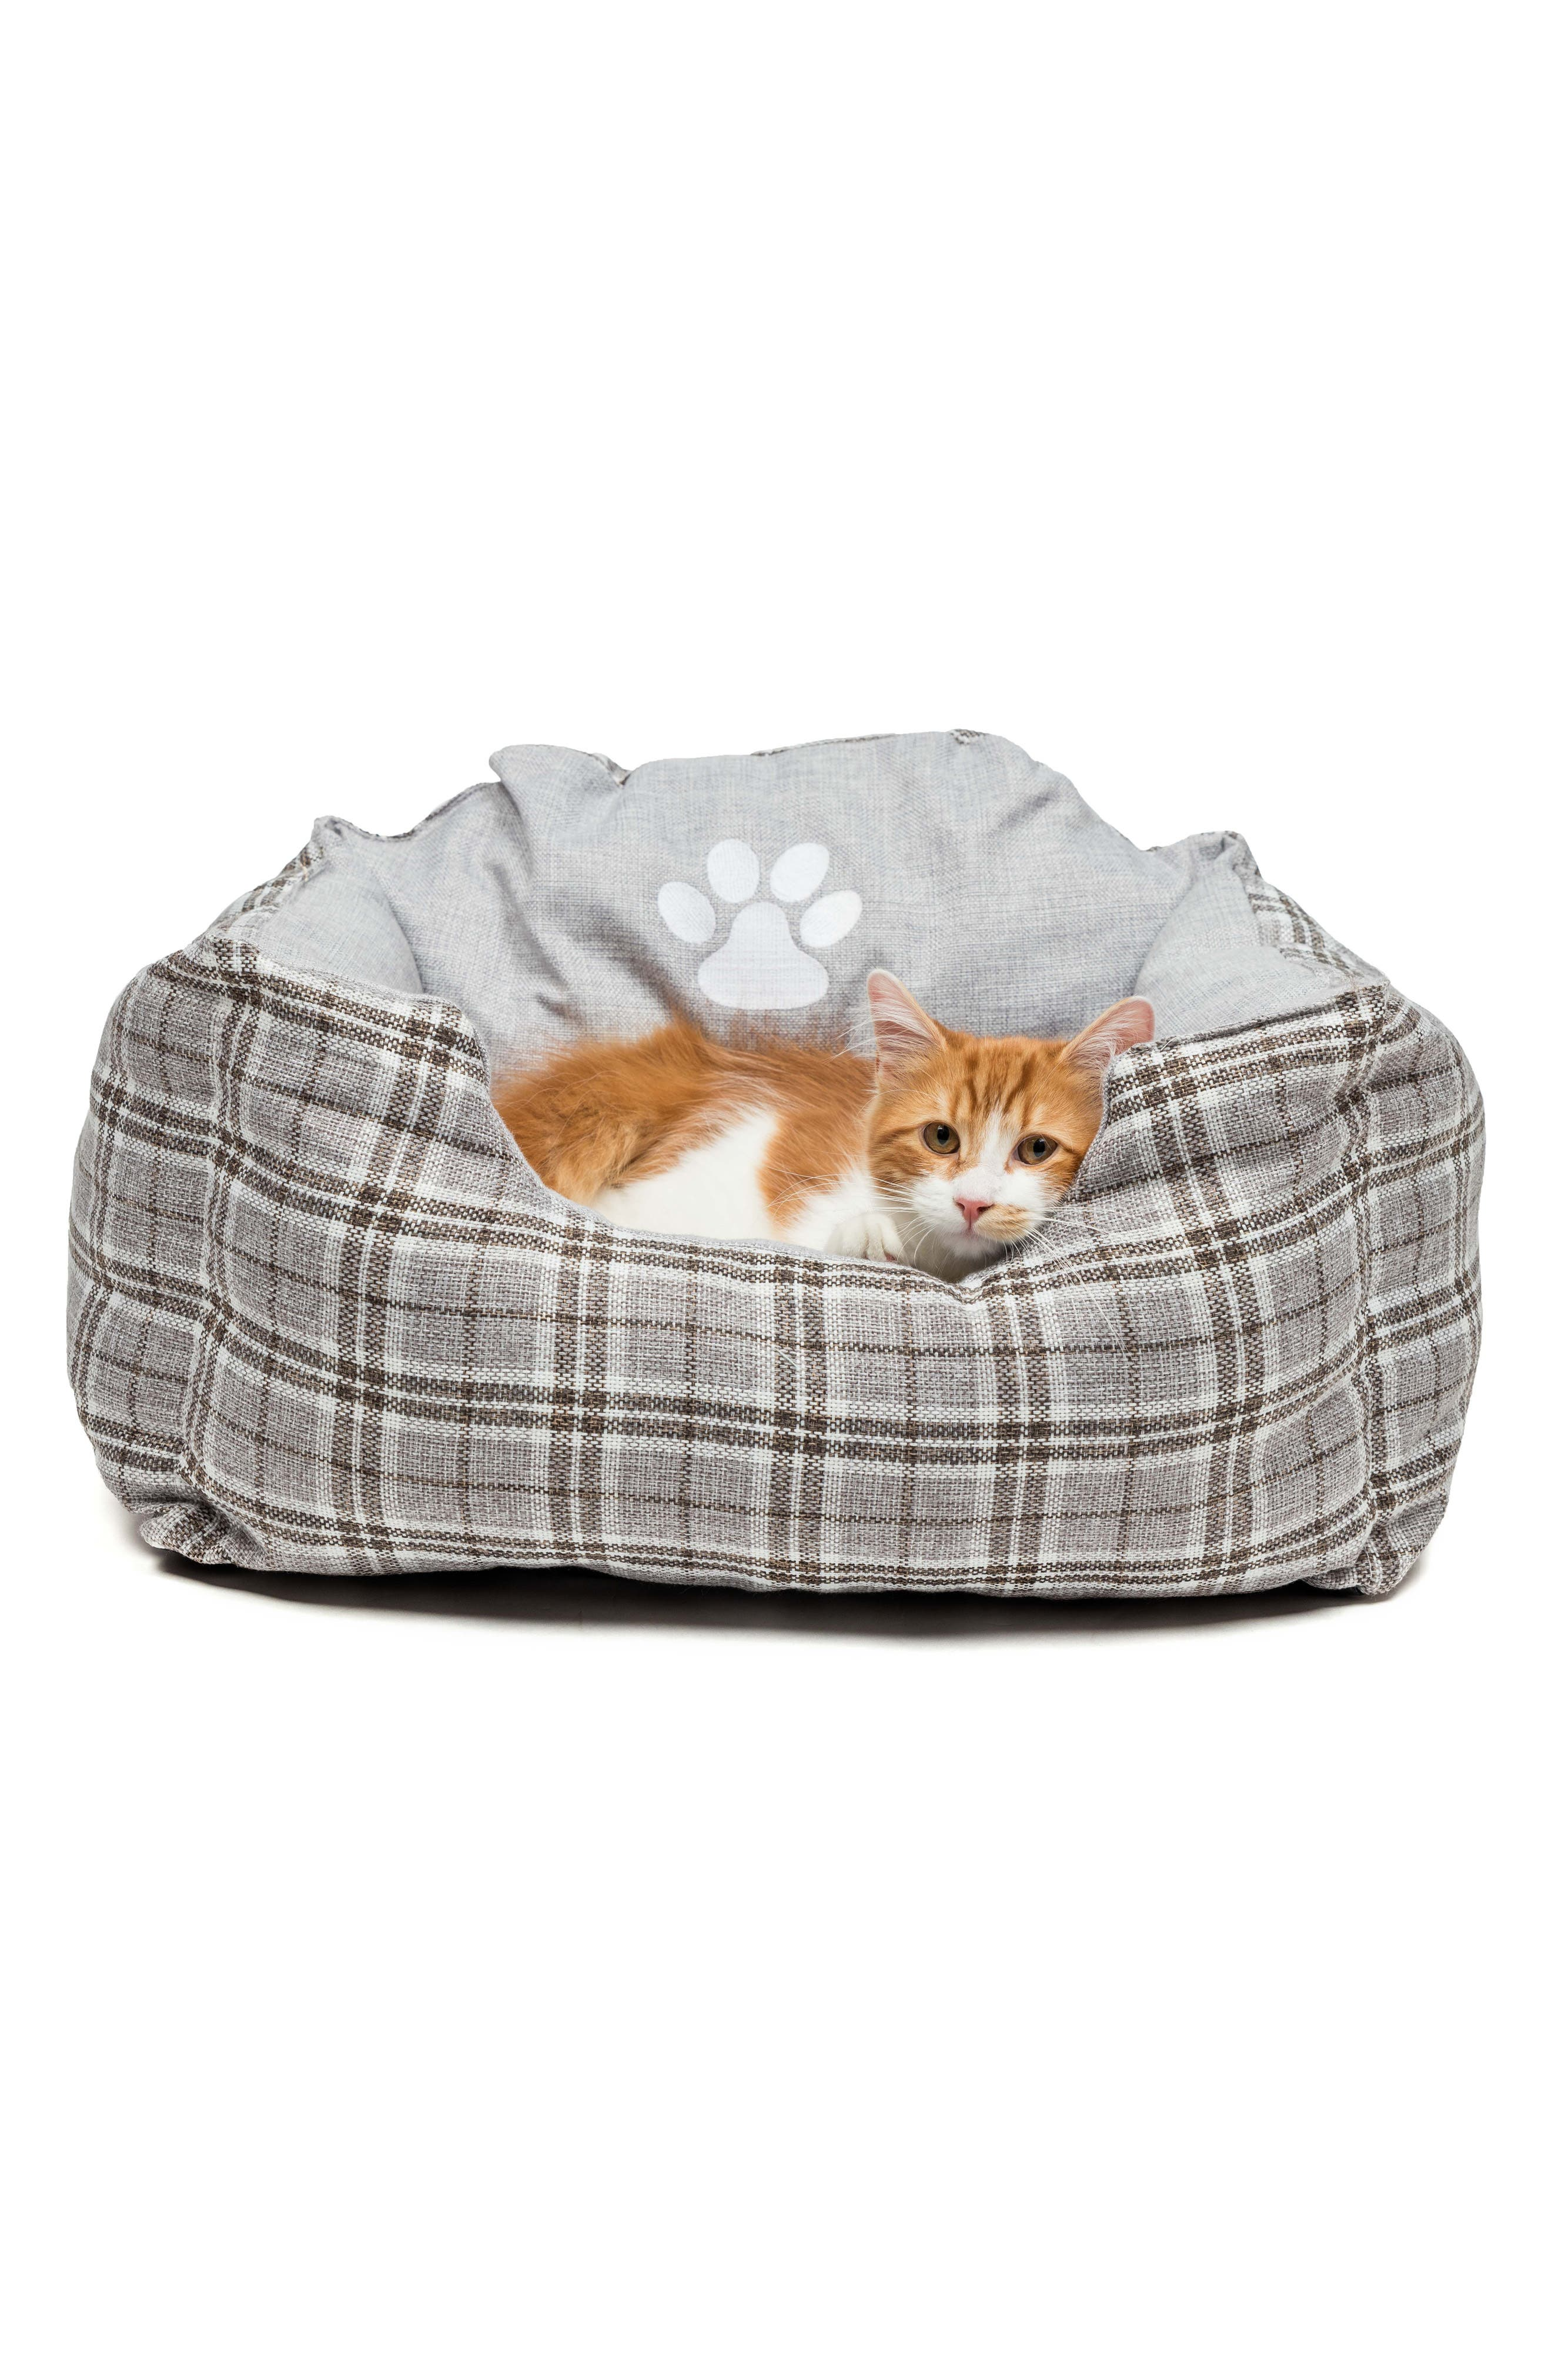 Harlee Small Square Pet Bed,                             Alternate thumbnail 2, color,                             Grey